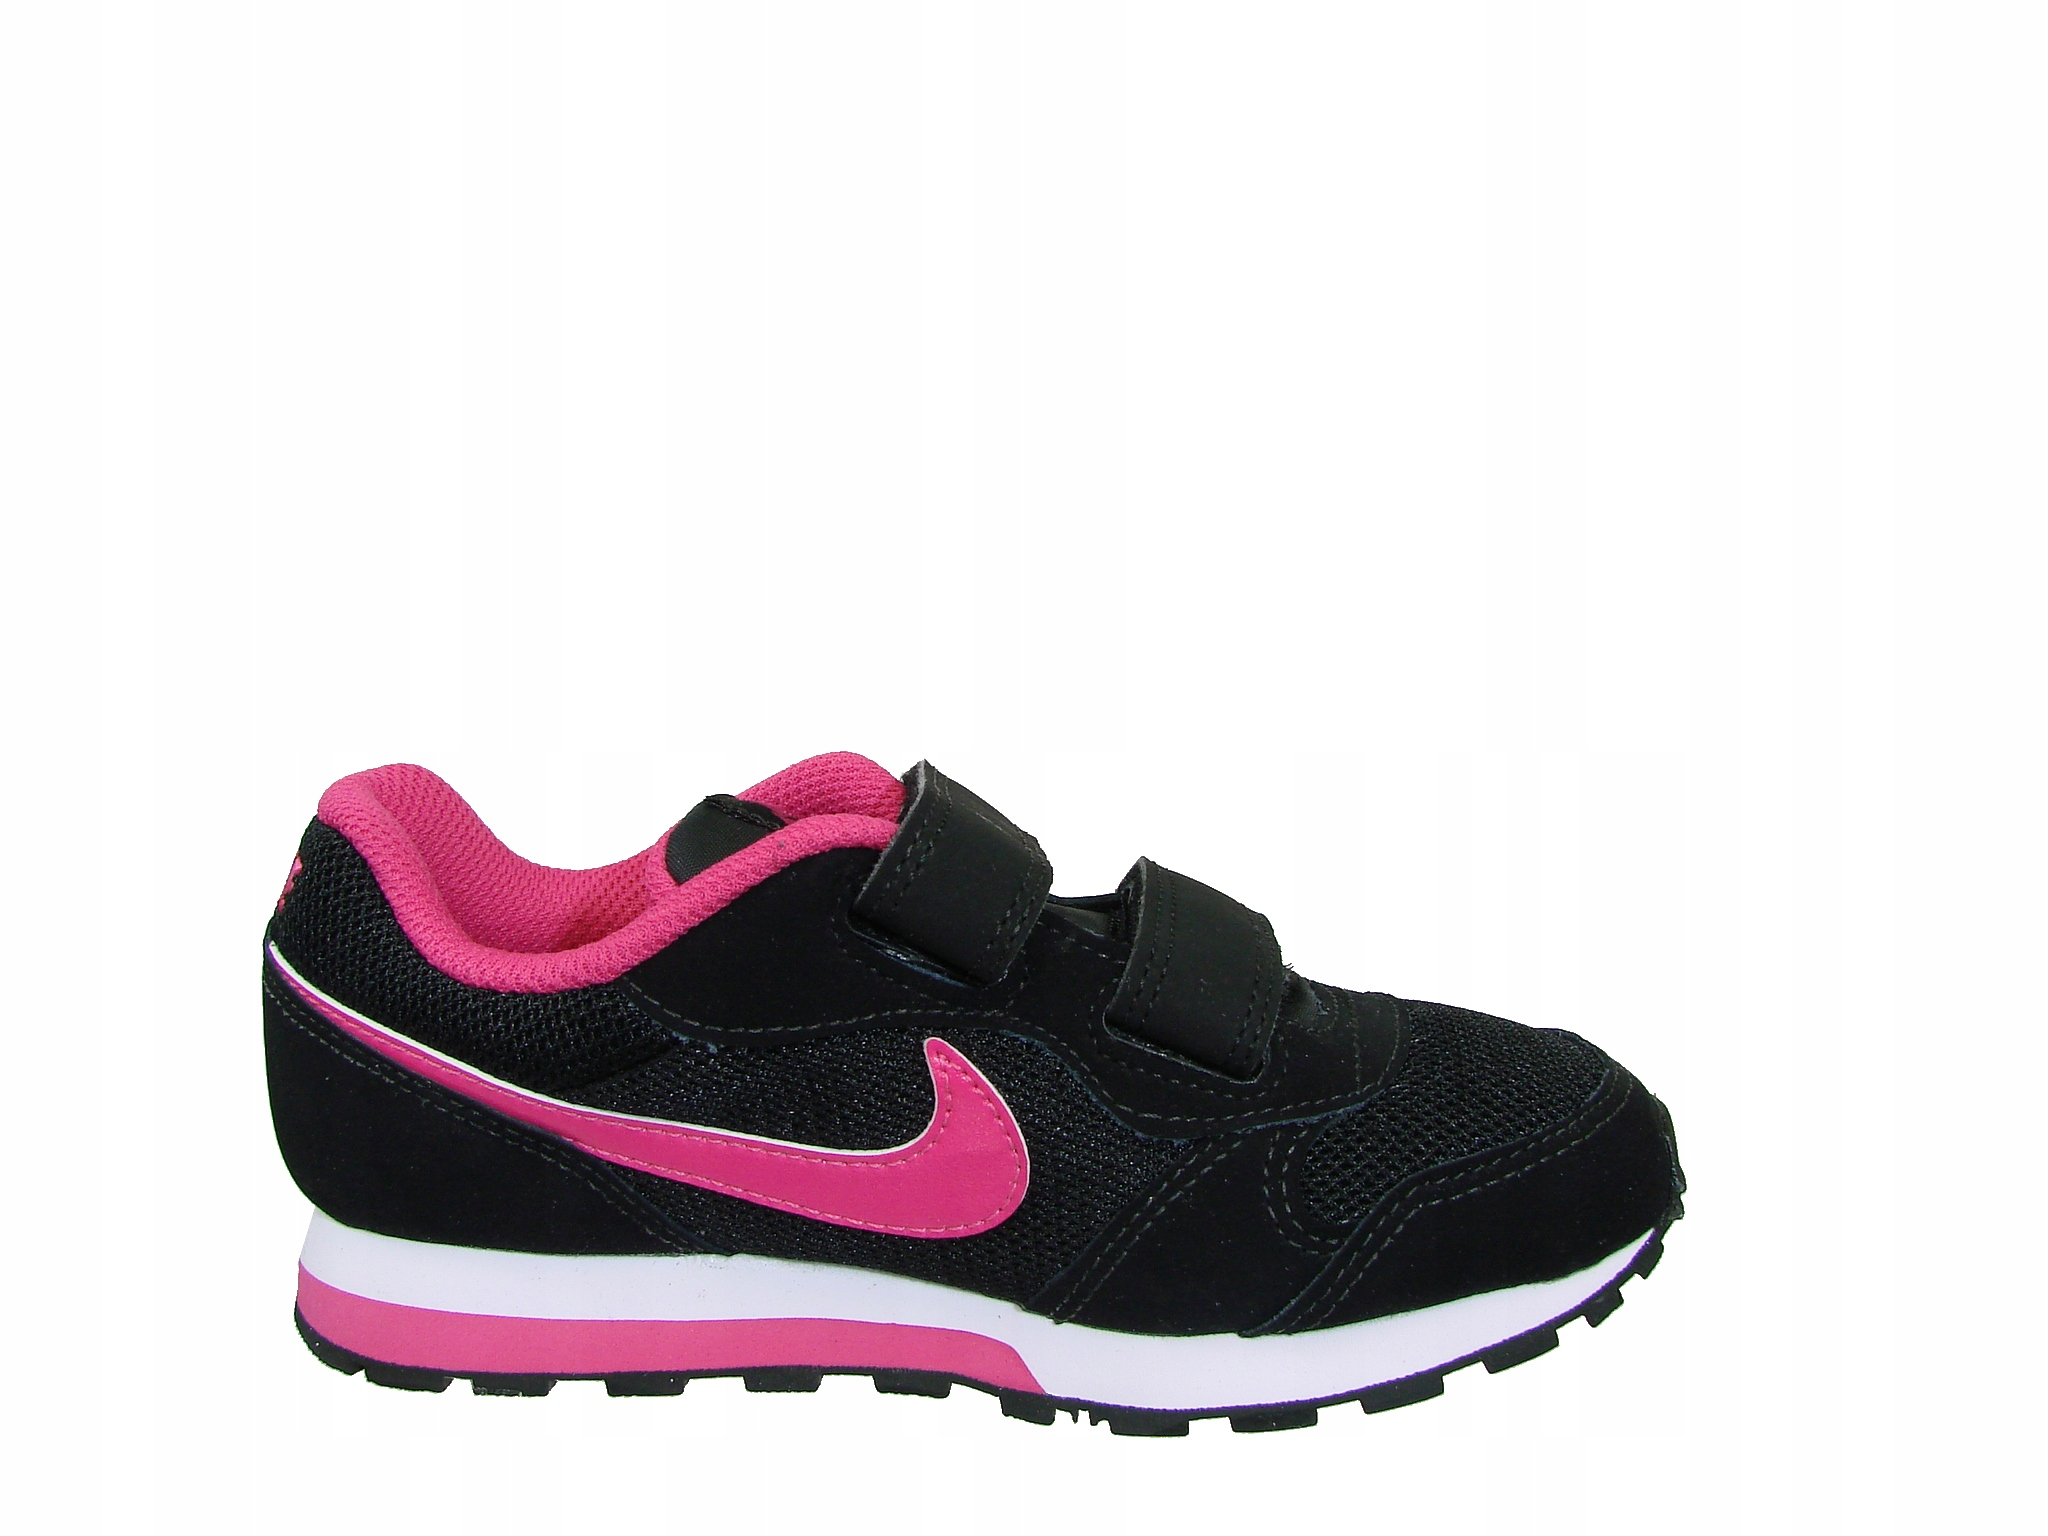 save off 836f6 971e6 BUTY DZIECIECE NIKE MD RUNNER 2 PS 807320-006 28 (7312080194)